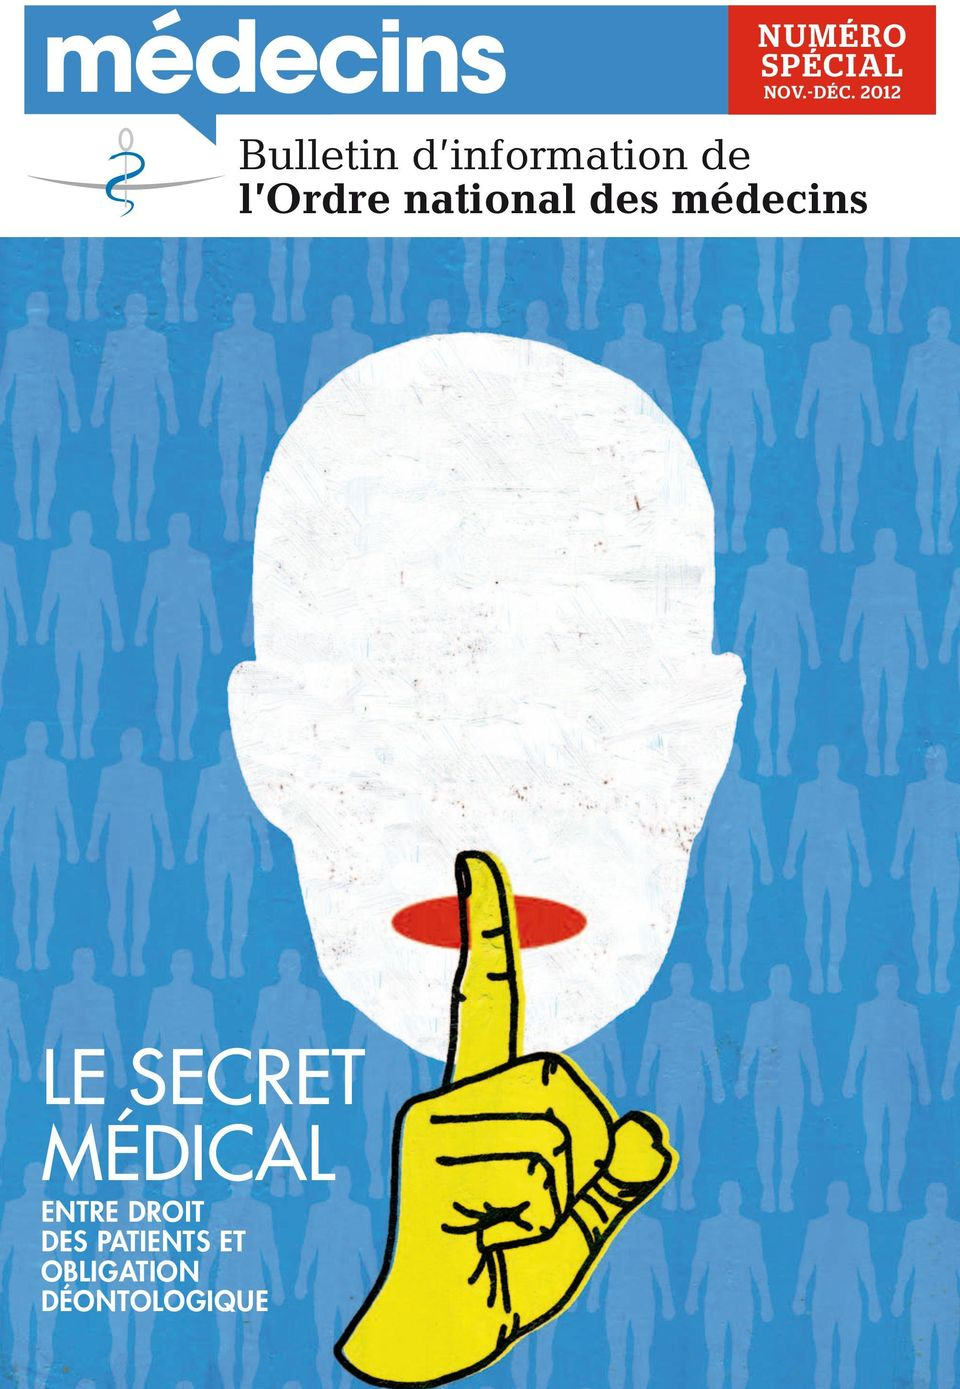 national des médecins Le secret médical